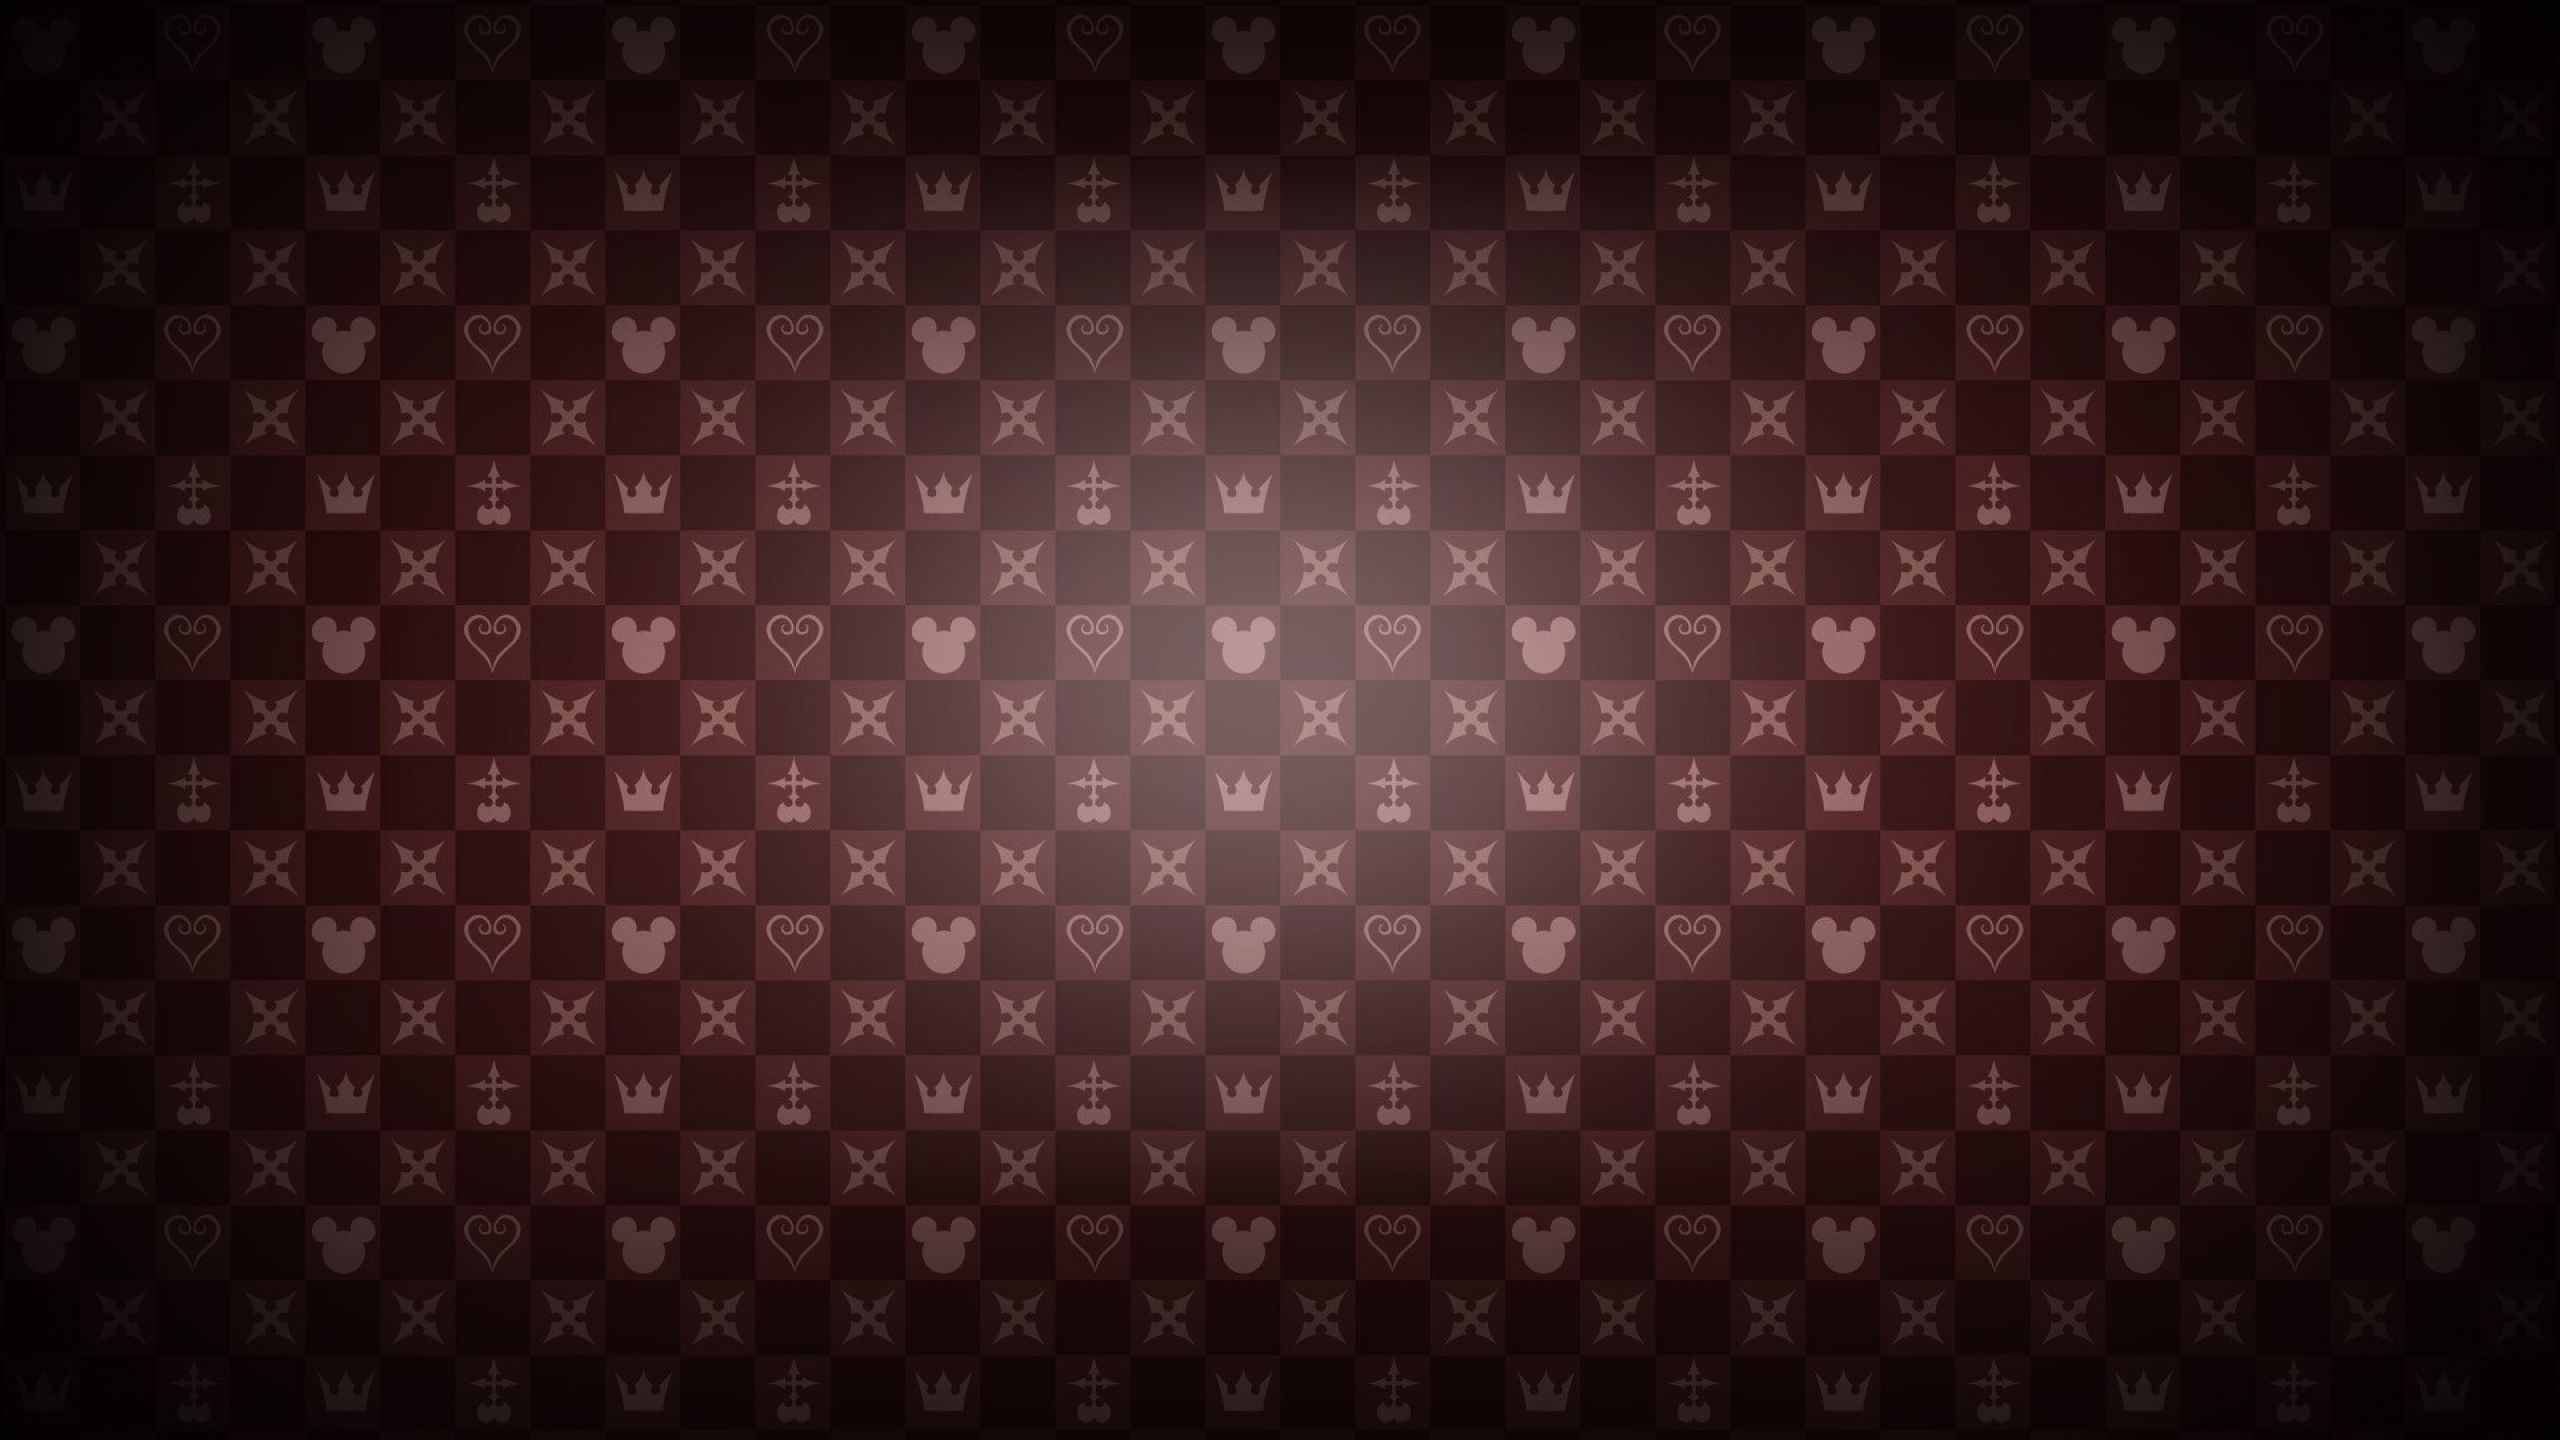 Download Wallpapers Download 2560x1440 Kingdom Hearts Minimalistic Red Patterns Mosaic Mickey Mouse He Kingdom Hearts Wallpaper Kingdom Hearts Heart Wallpaper